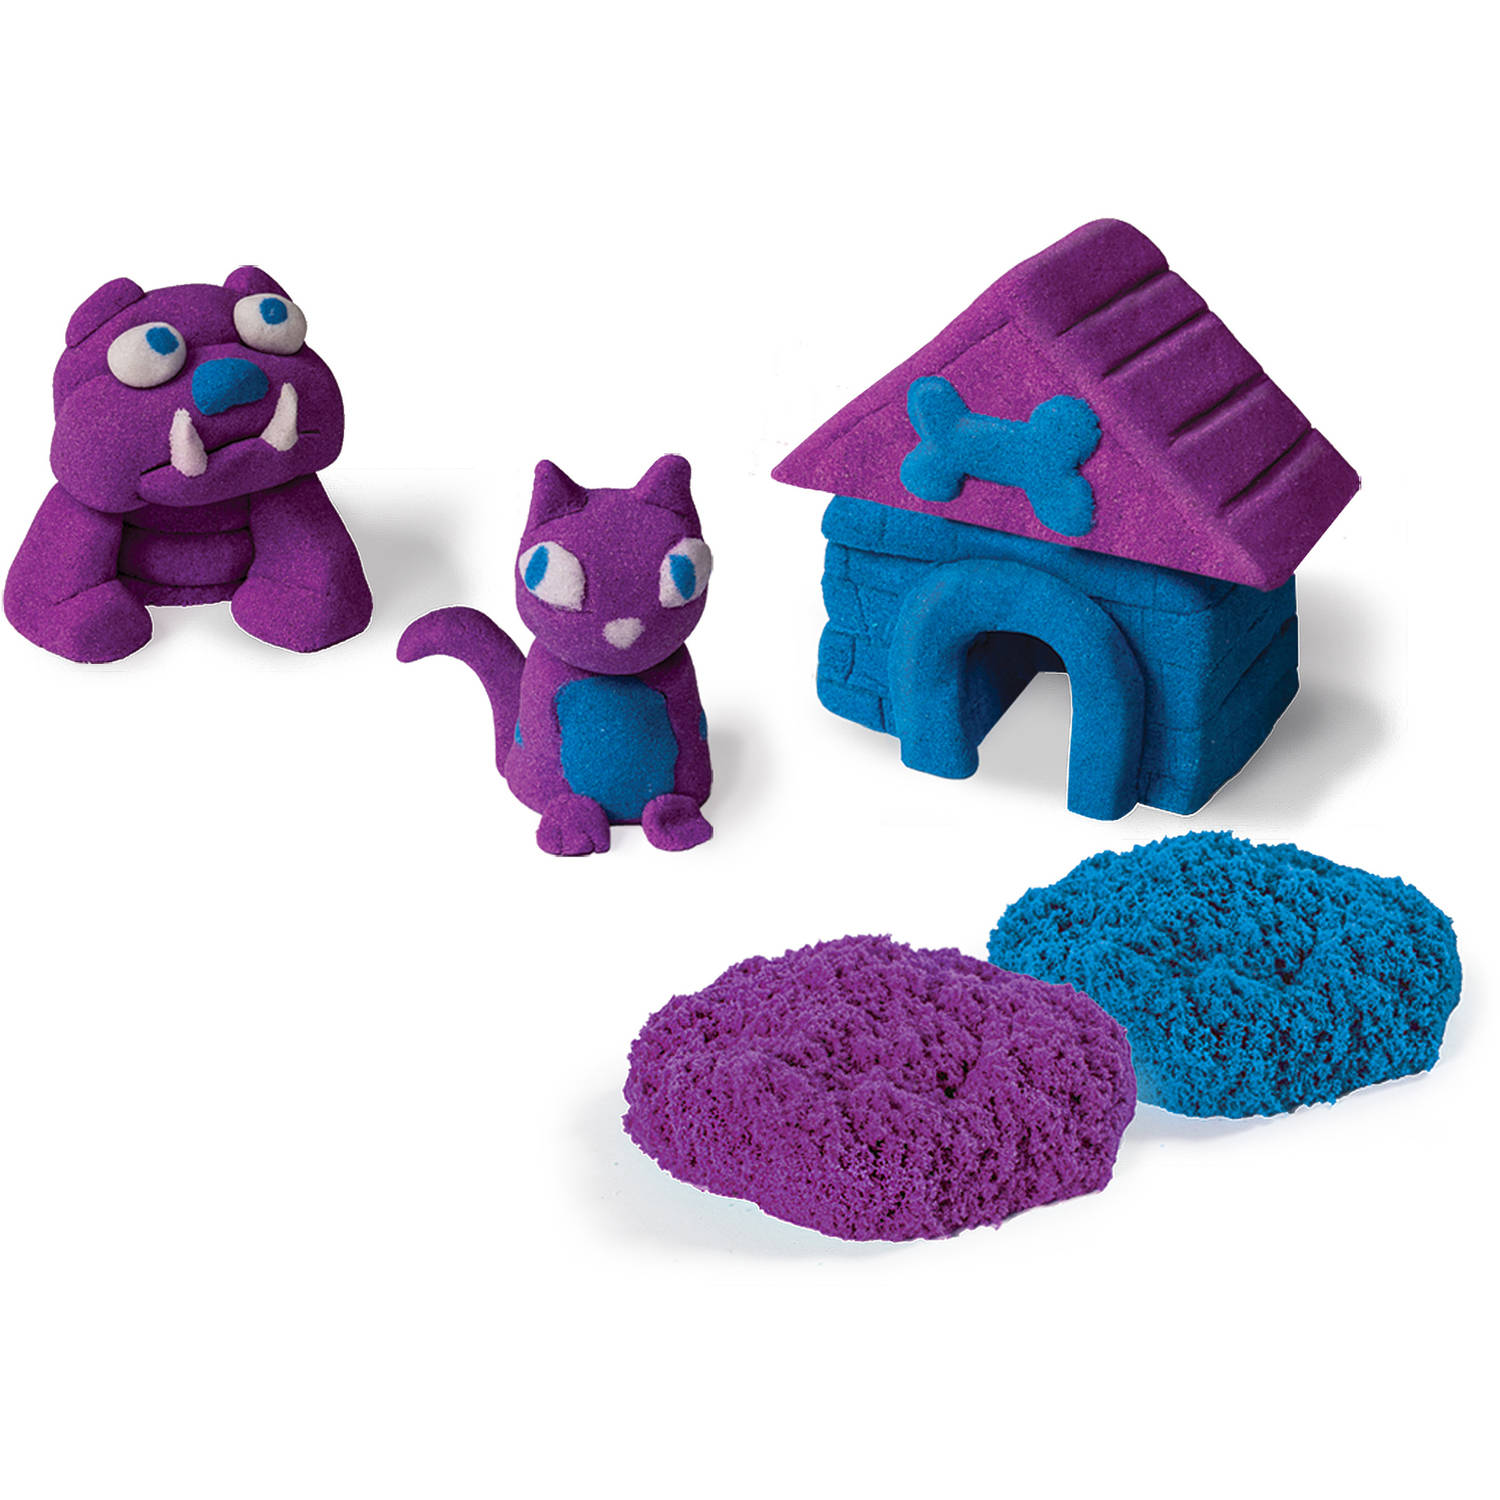 Kinetic Sand Build 1lb Color Pack, Purple and Blue